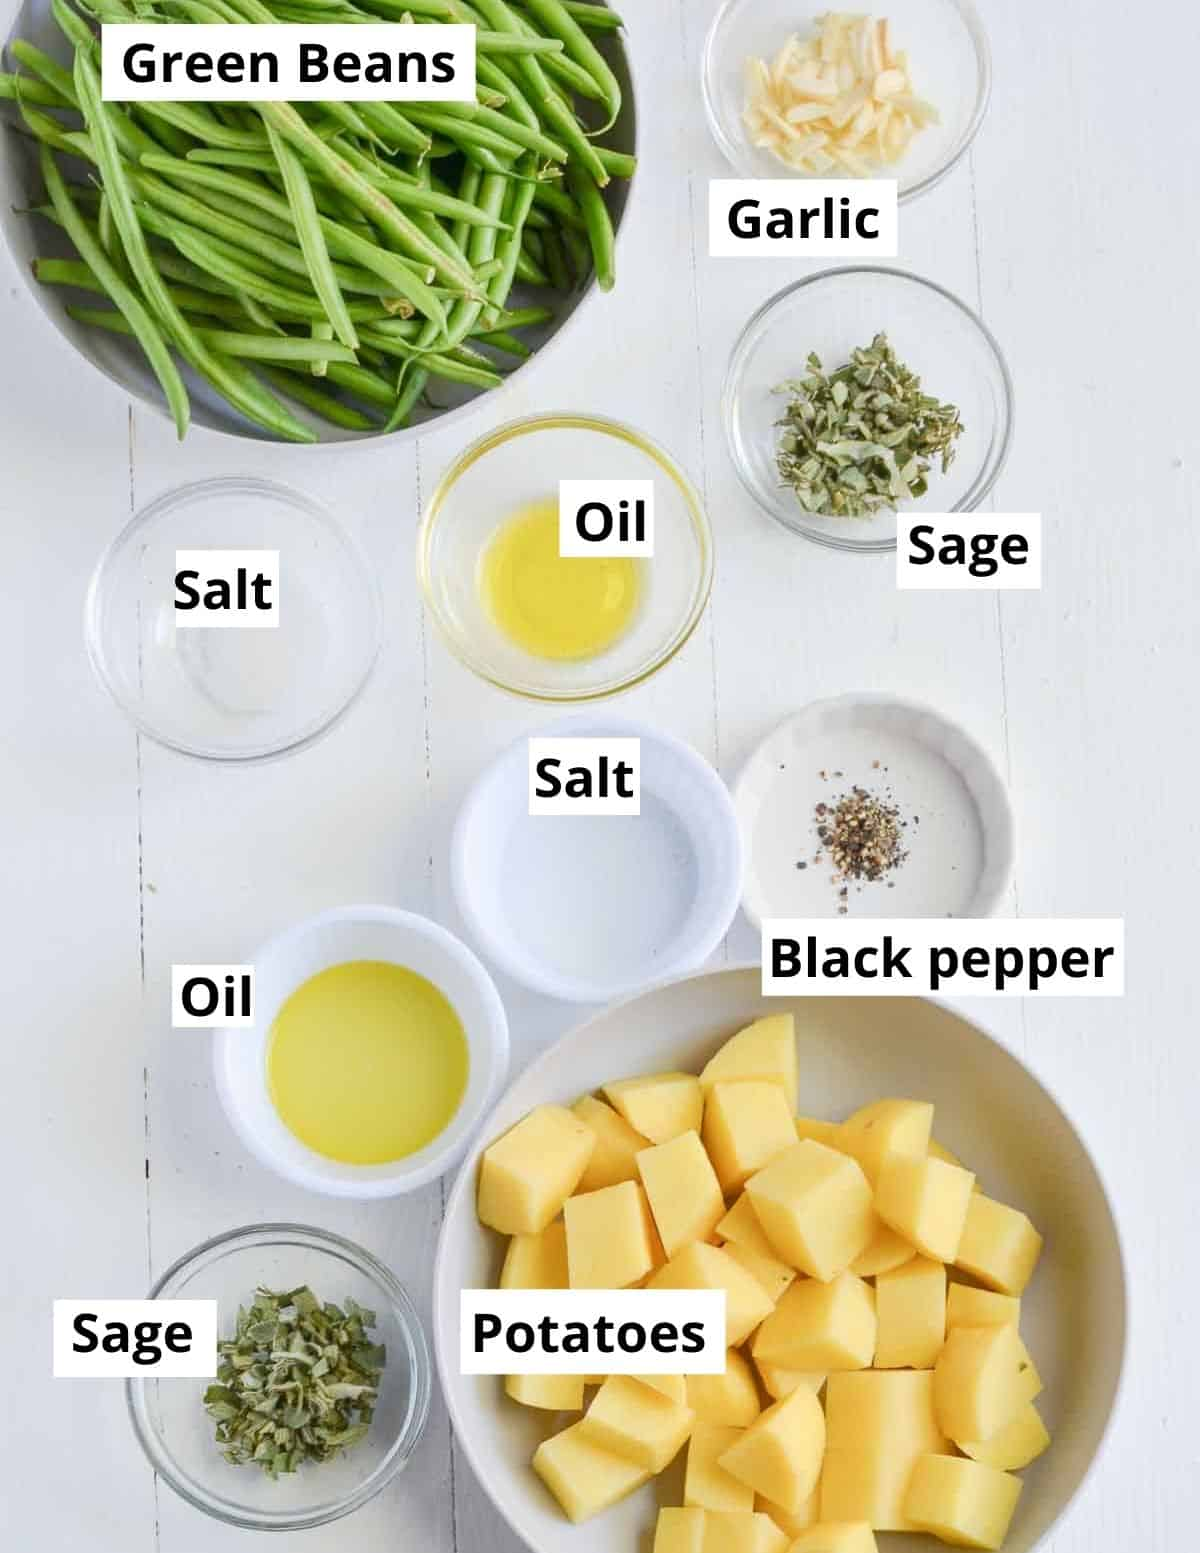 ingredients listed to make potatoes with green beans